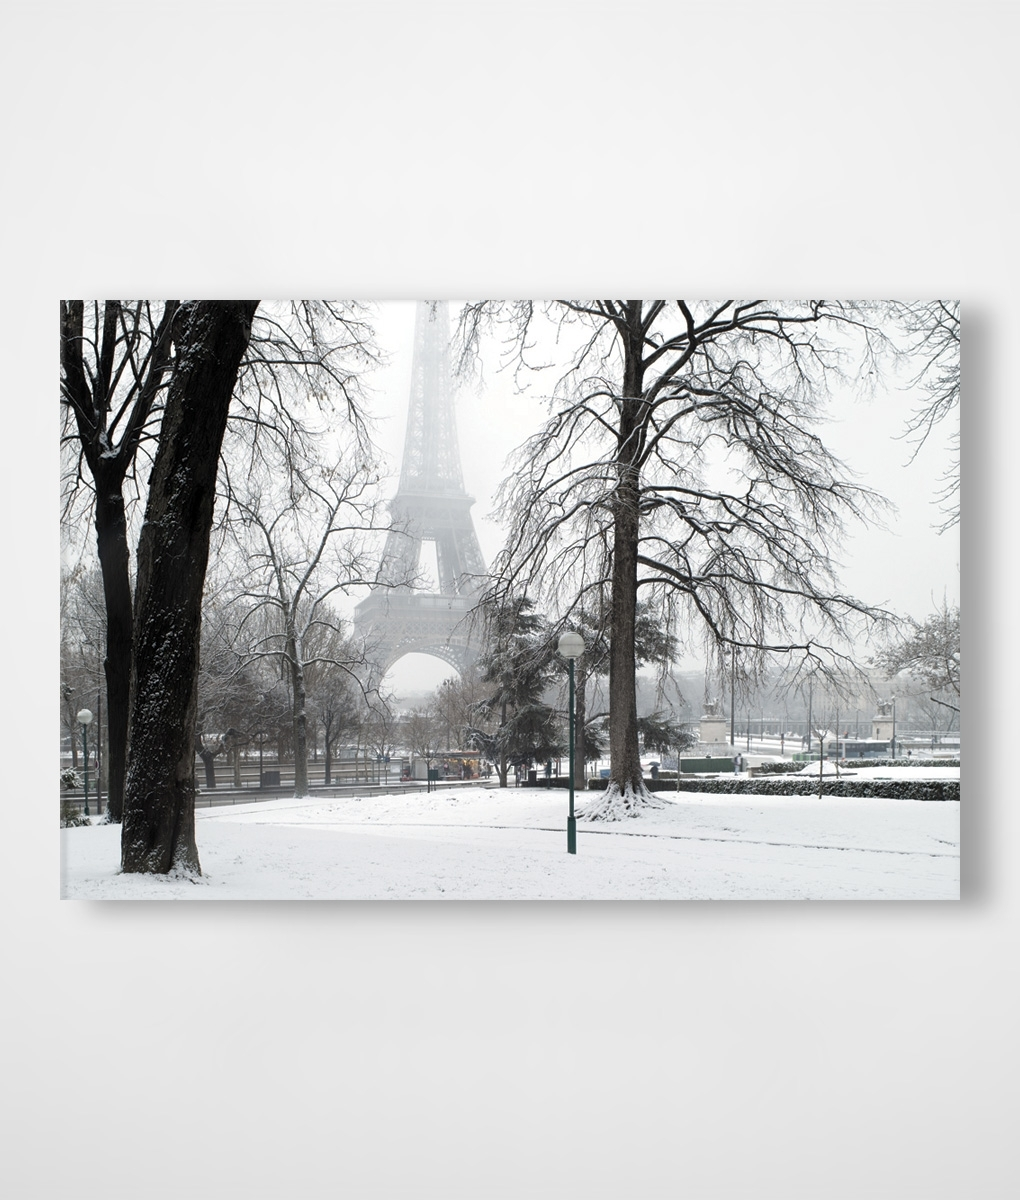 Paris In Winter Snow Canvas Print | Framingland Regarding Newest Canvas Wall Art Of Paris (View 9 of 15)